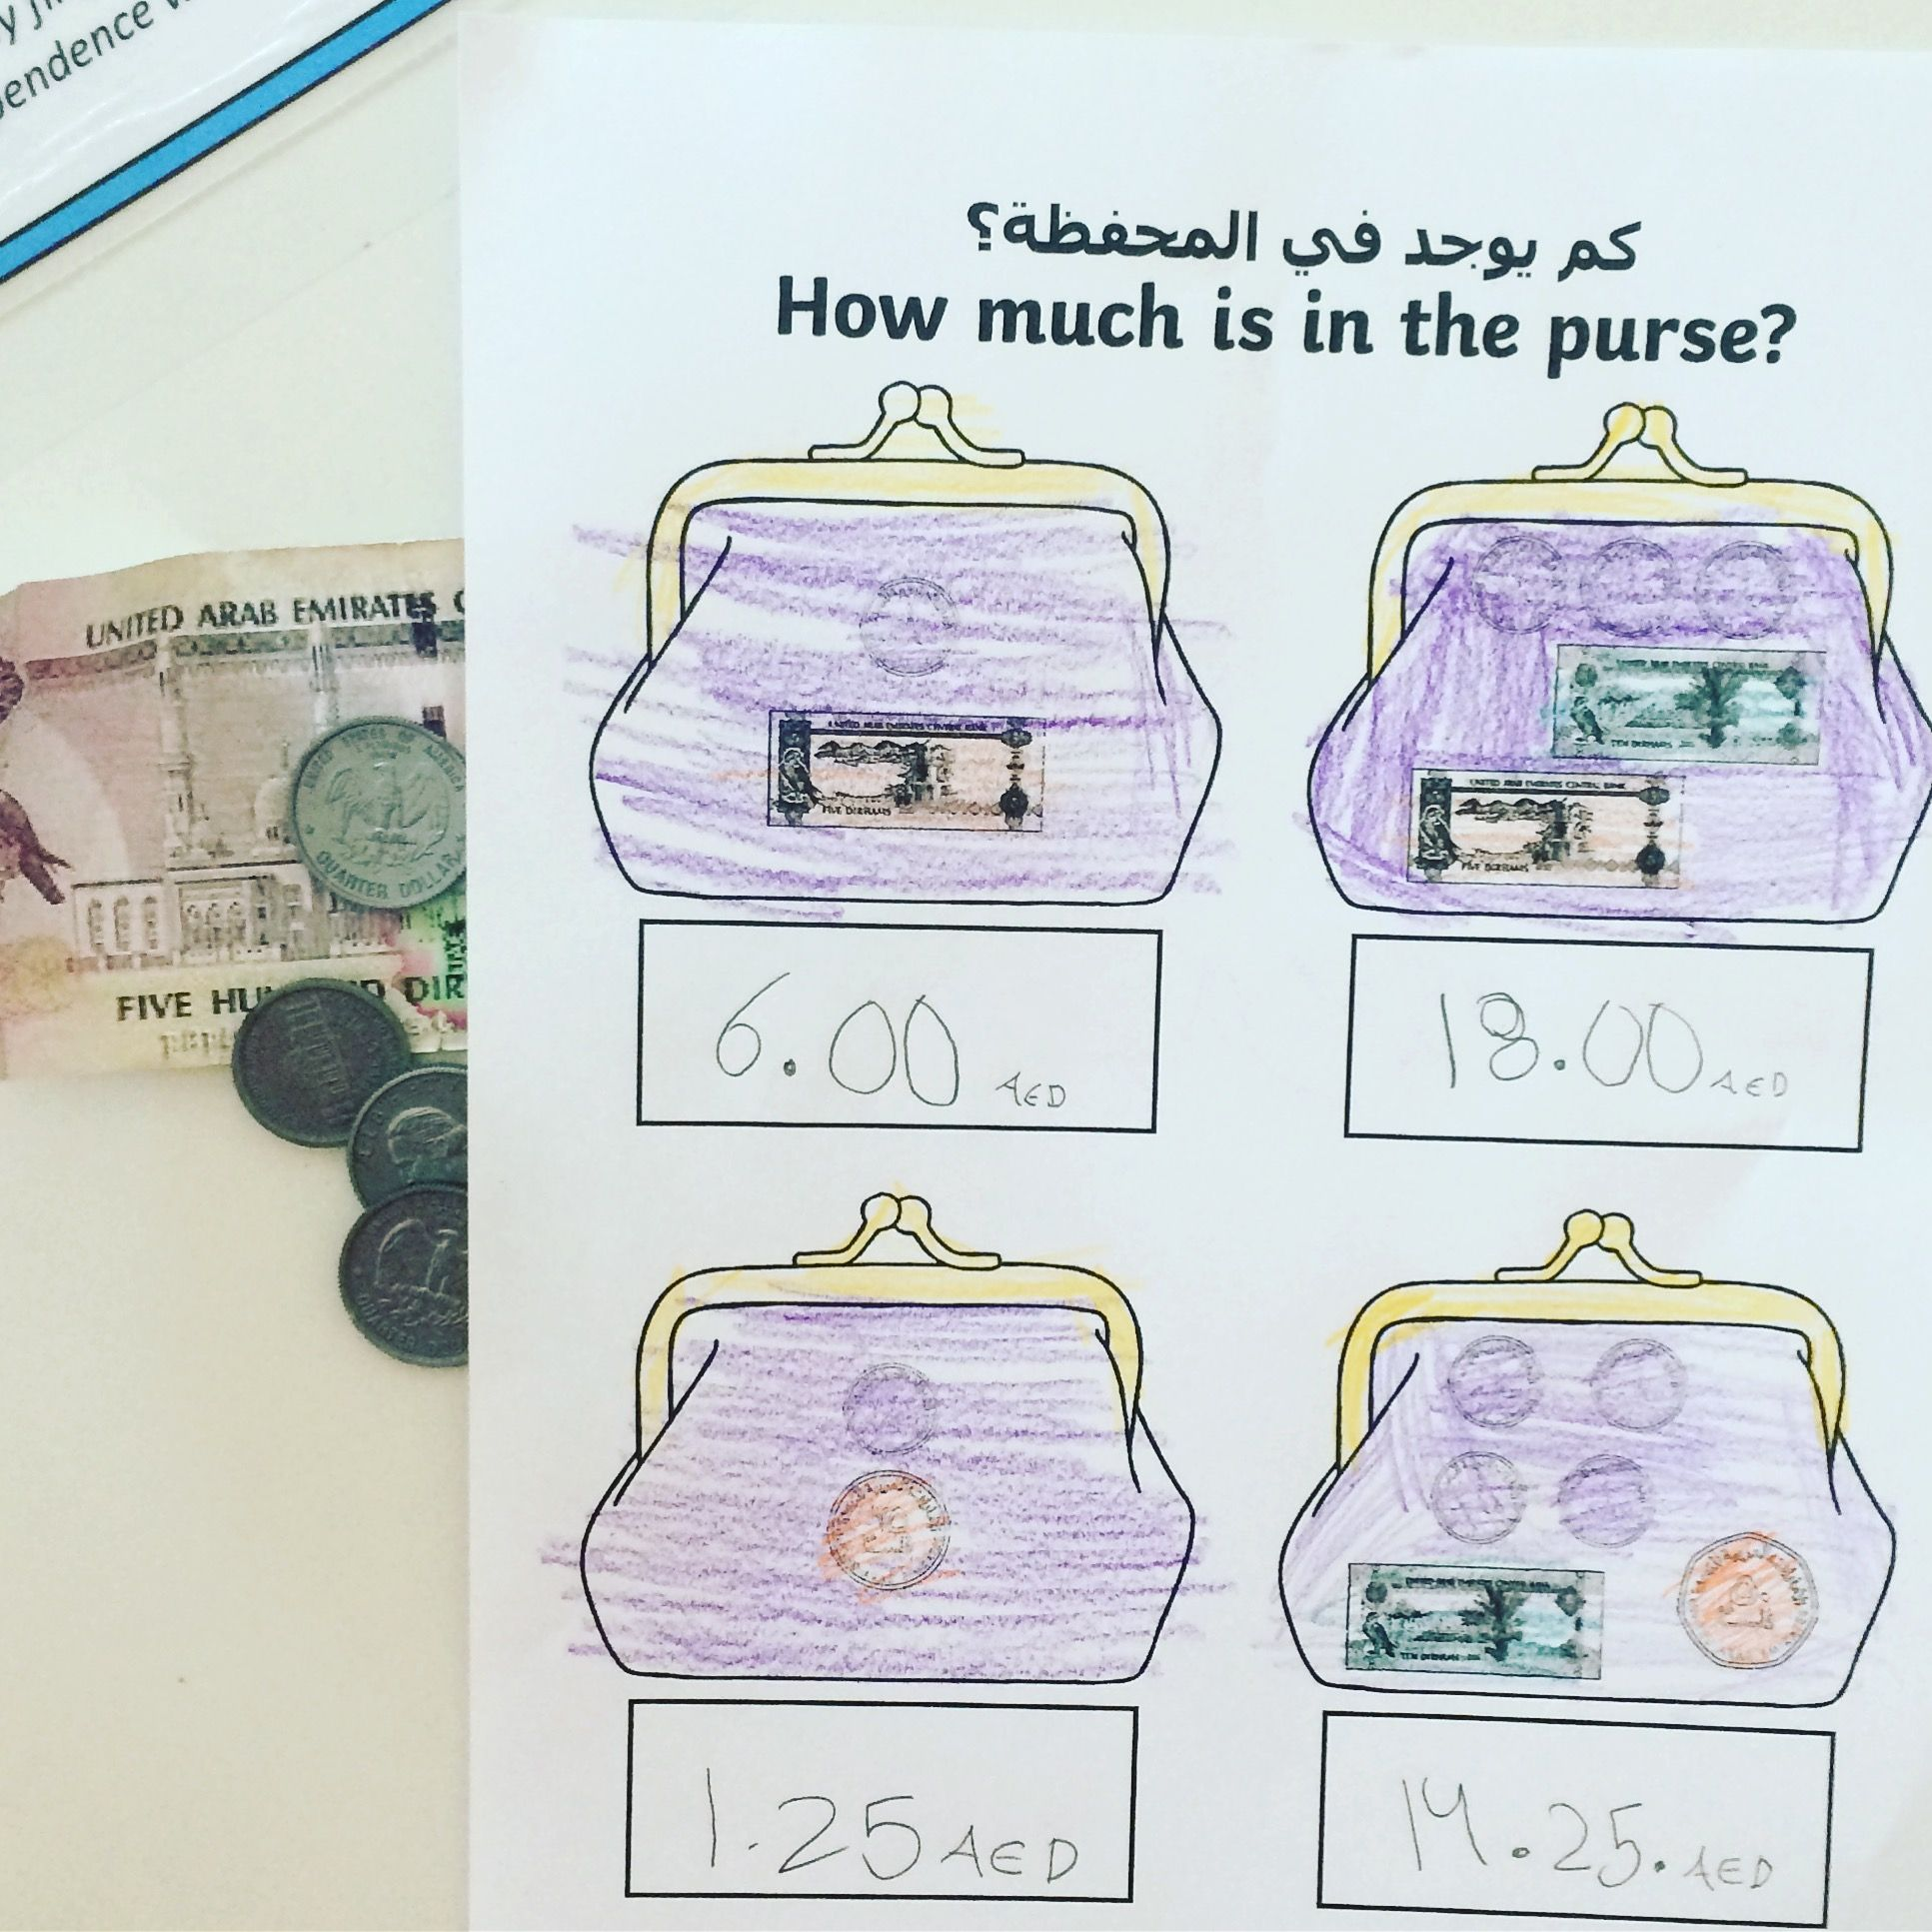 dirham worksheet how much is in the purse relevant money grade1 uaespecific. Black Bedroom Furniture Sets. Home Design Ideas